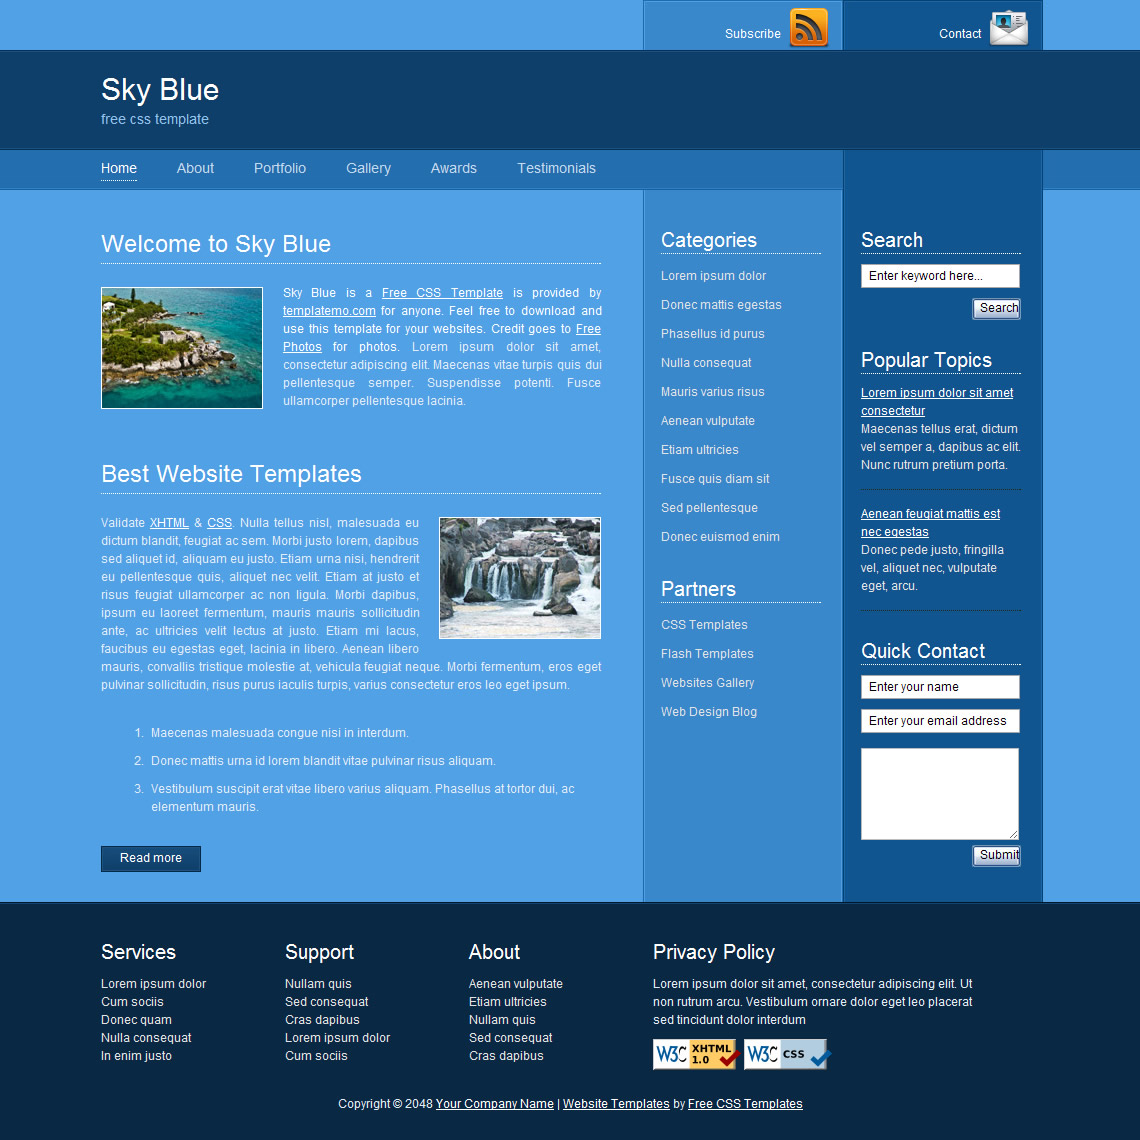 Web Design Templates Free Download Php